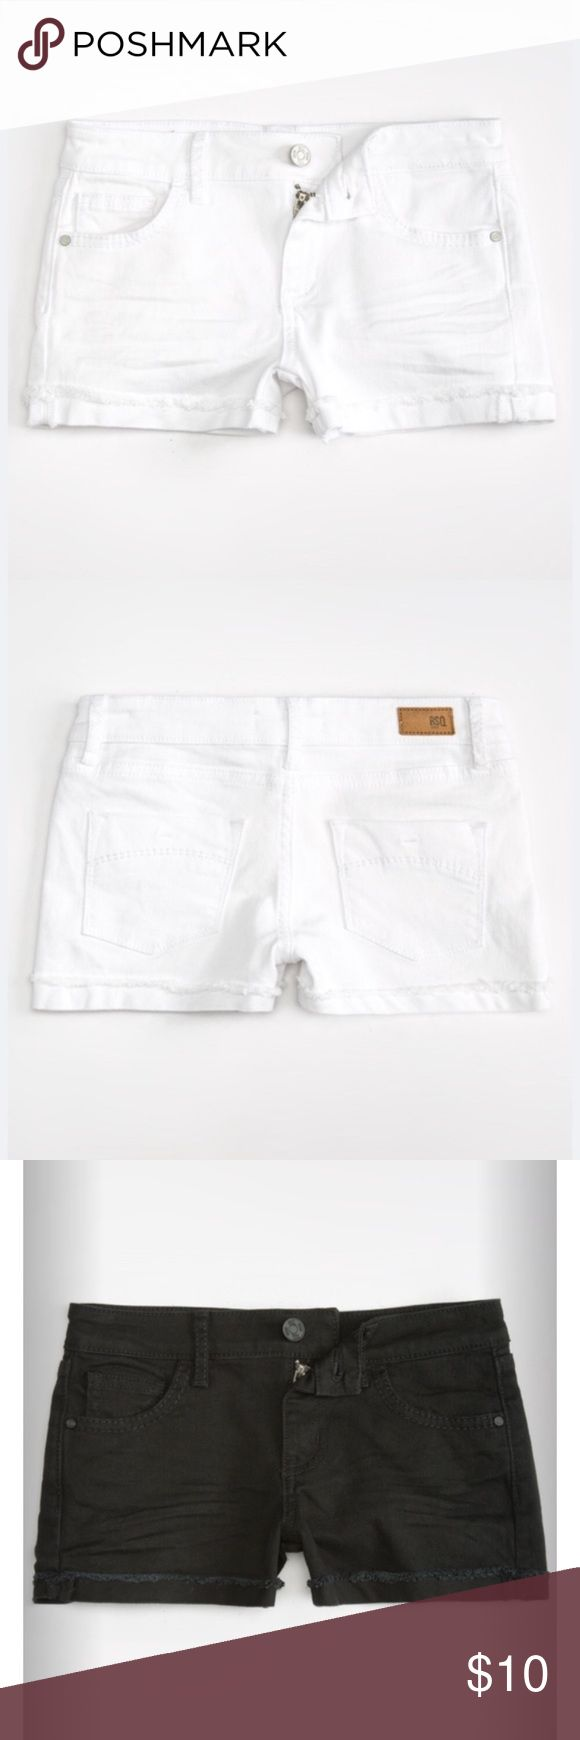 • Tilly's RSQ Women's Shorts • Absolutely stunning shorts from Tillys. These have been worn once, but they no longer fit me. Size 5- fits stretchy and snug. Very comfortable material! Have white and black available Tilly's Shorts Jean Shorts